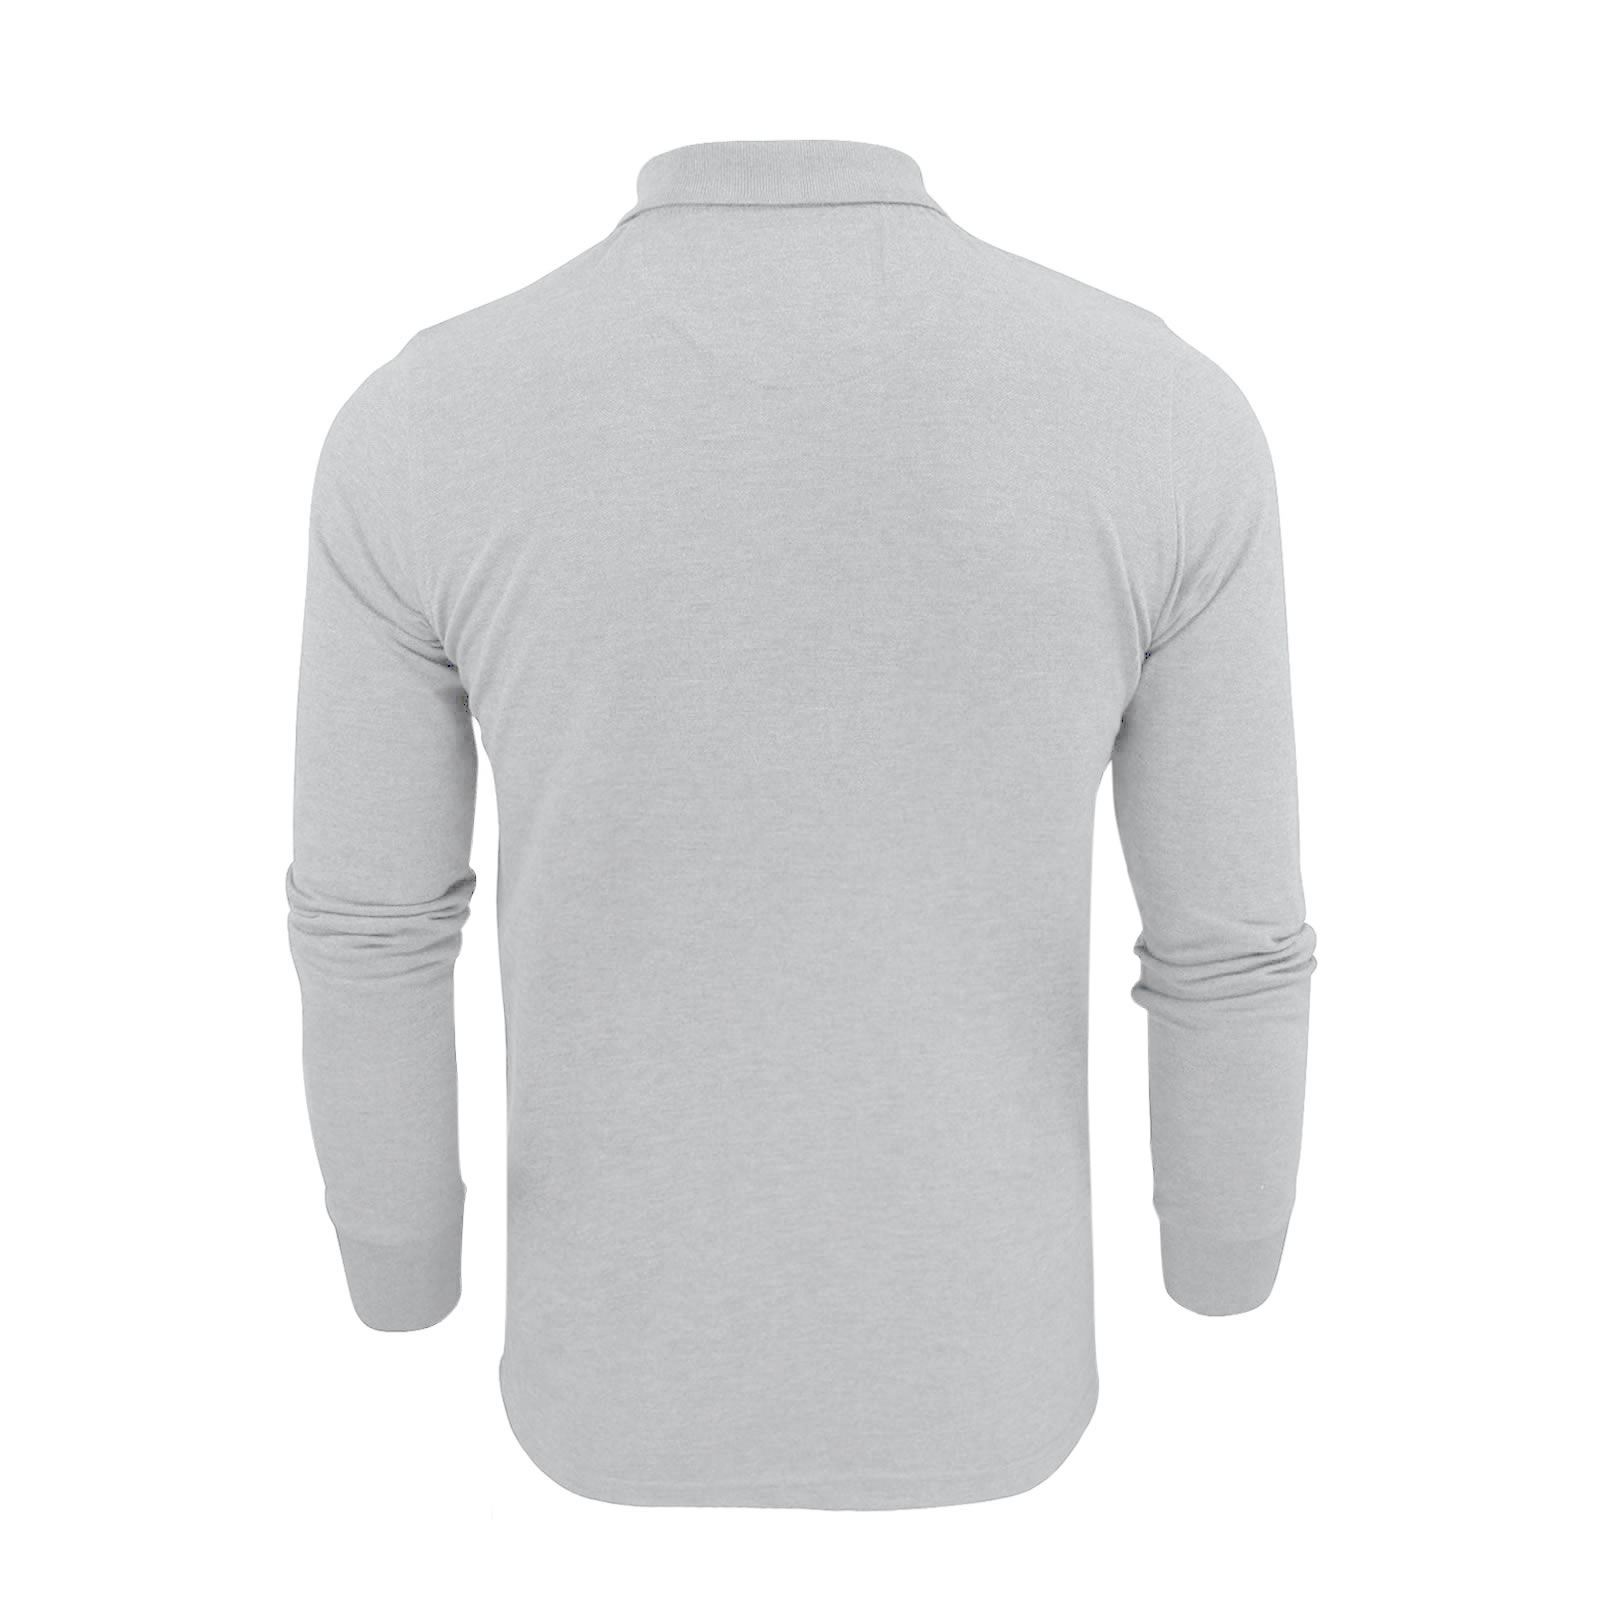 Mens-Polo-T-Shirt-Brave-Soul-Lincoln-Long-Sleeve-Cotton-Pique-Casual-Top thumbnail 17